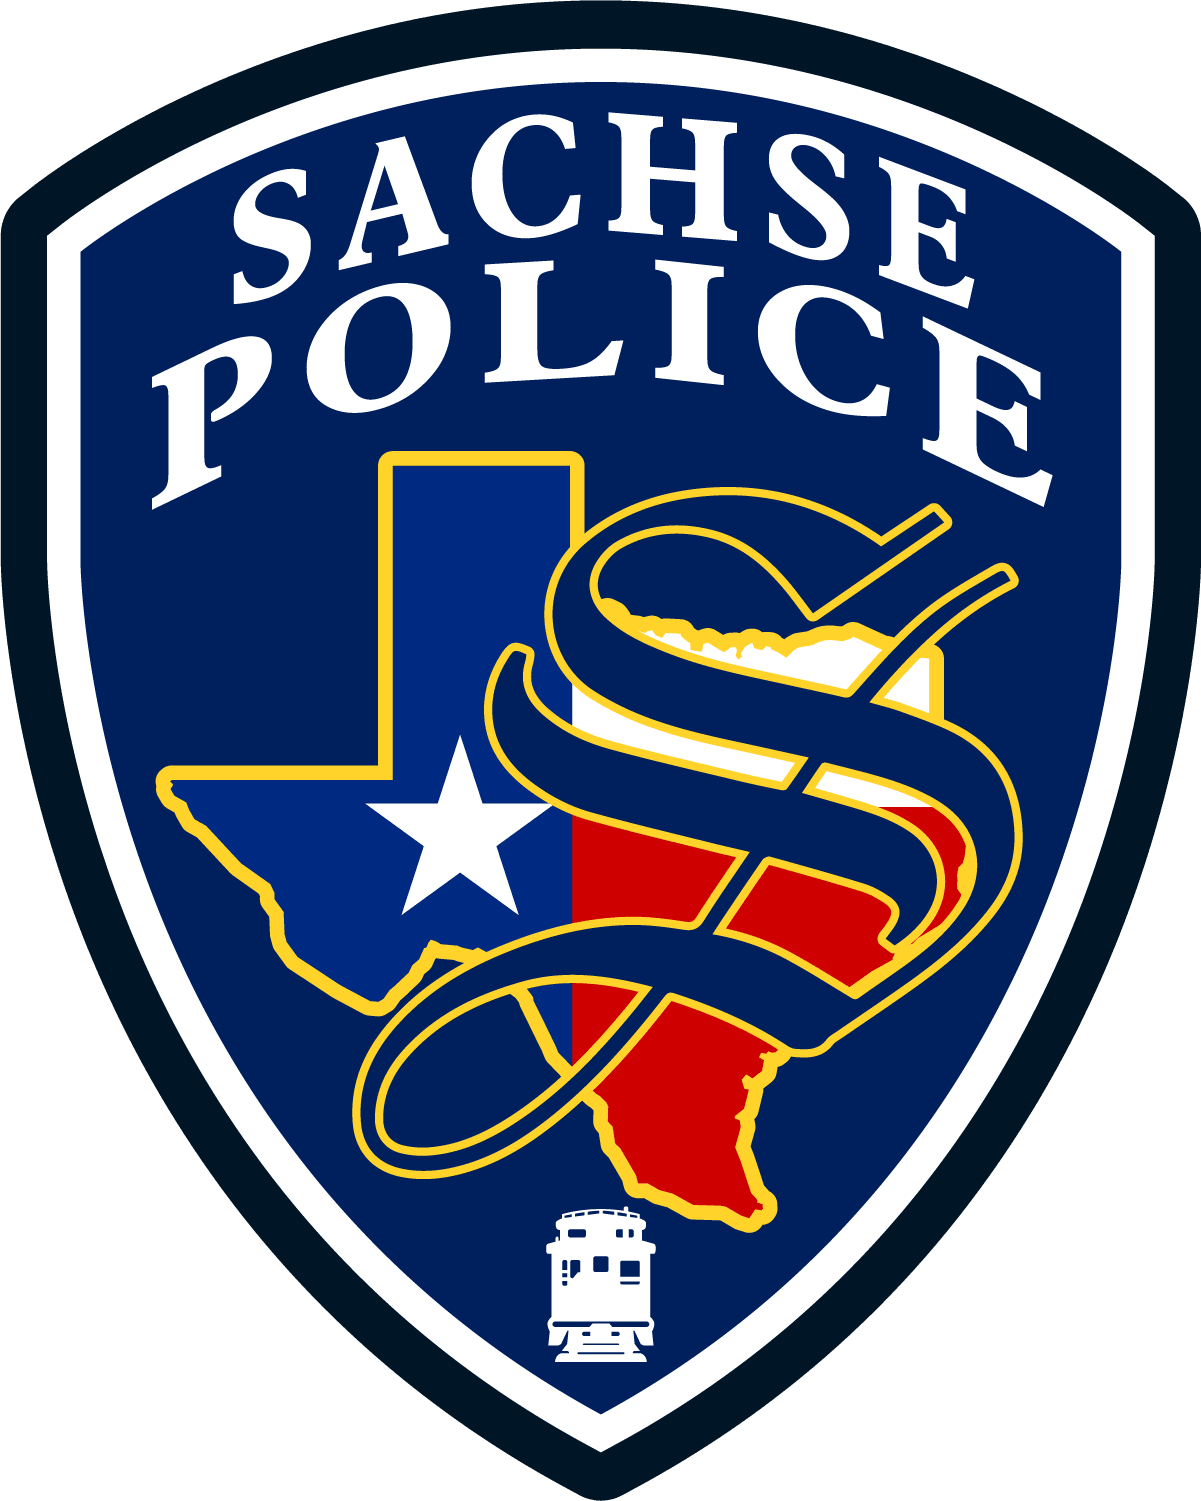 C-156961 Sachse Police Department Shoulder Patch 4 Texas jl AR